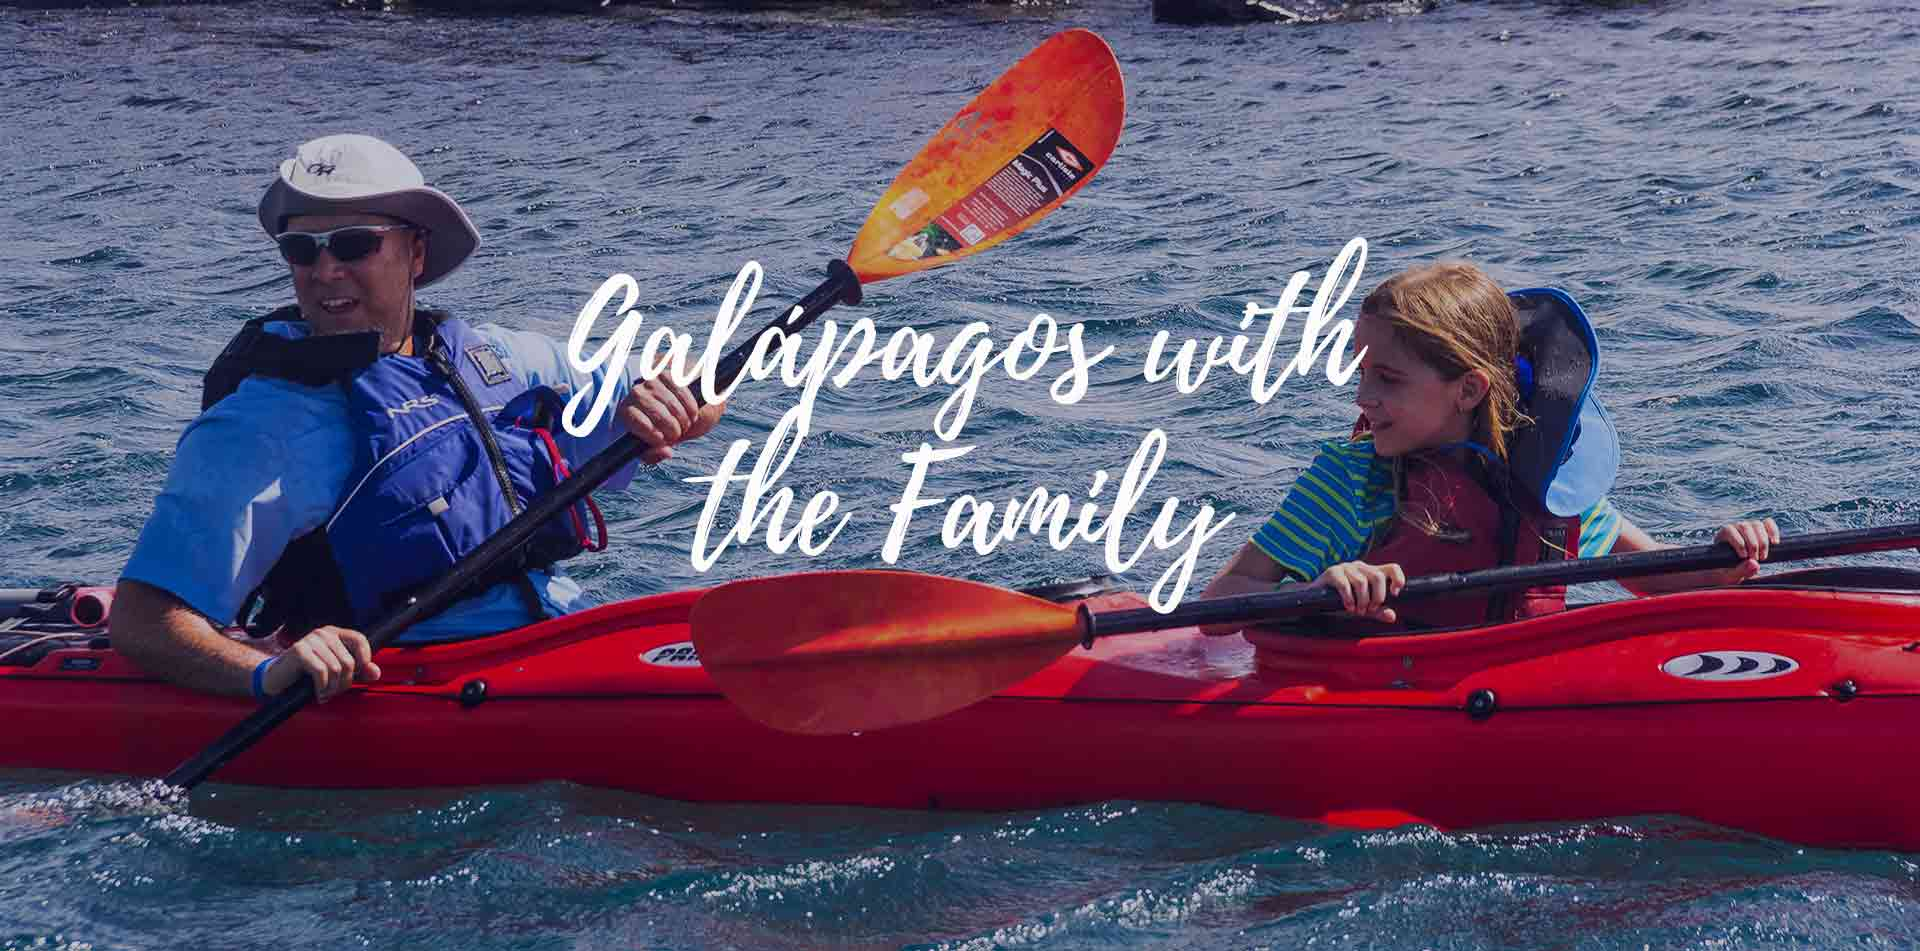 South America Ecuador father and daughter kayaking Galapagos Islands with the family - luxury vacation destinations